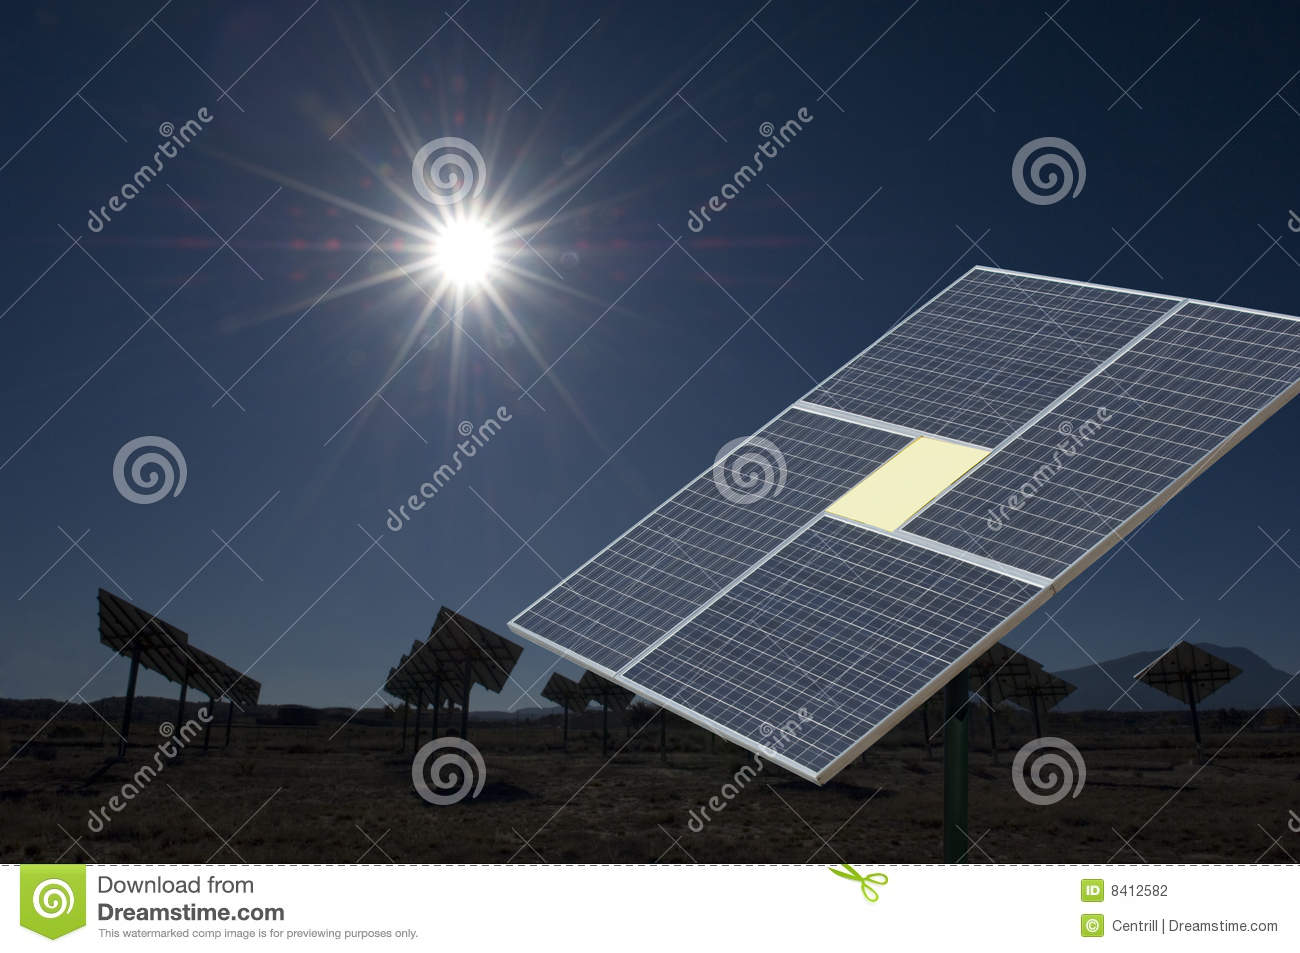 renewable resource at a solar energy power station in New Mexico